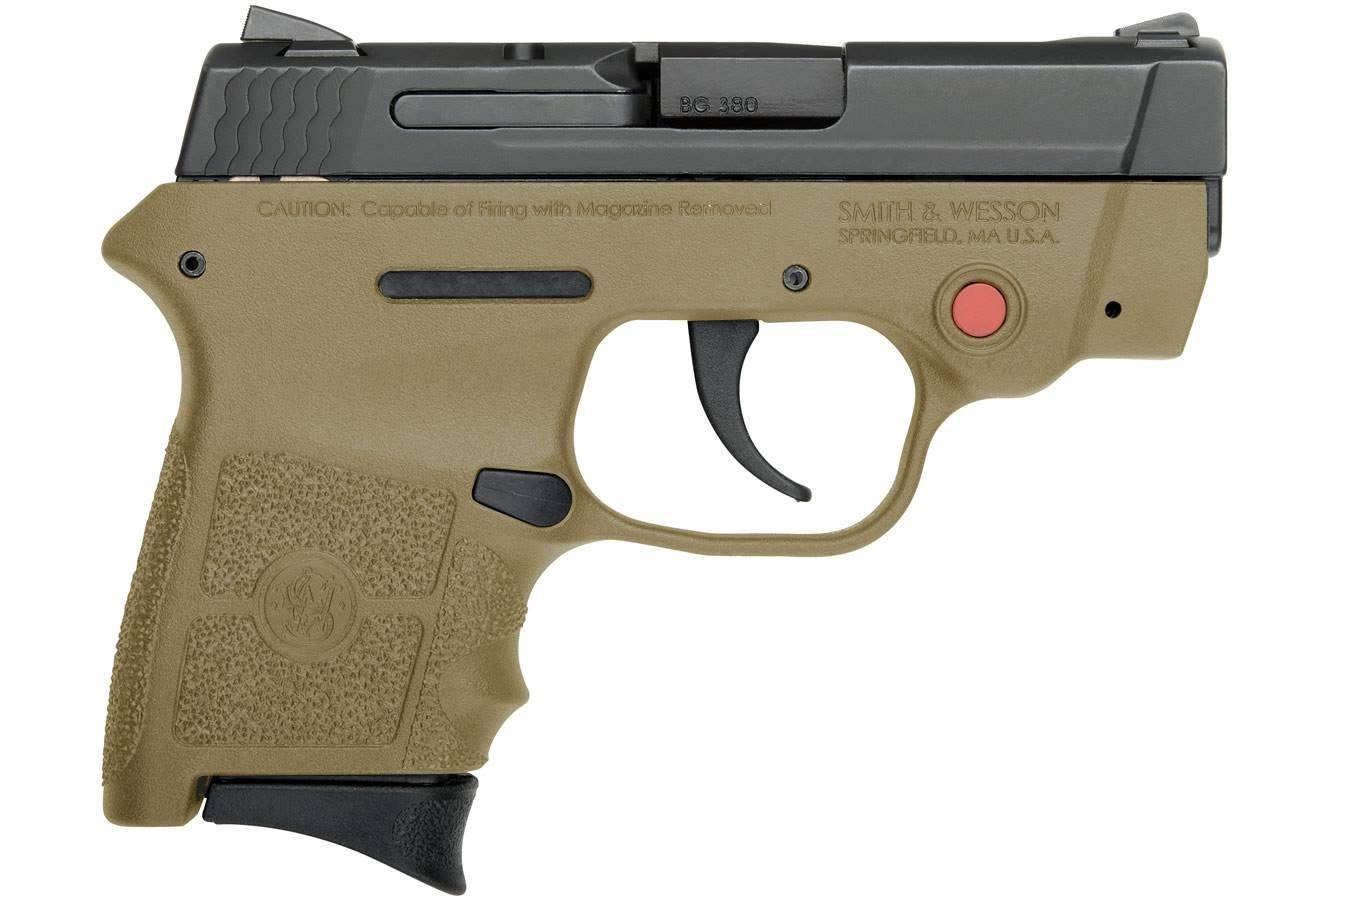 Smith & Wesson M&P M&P Bodyguard 380-img-1